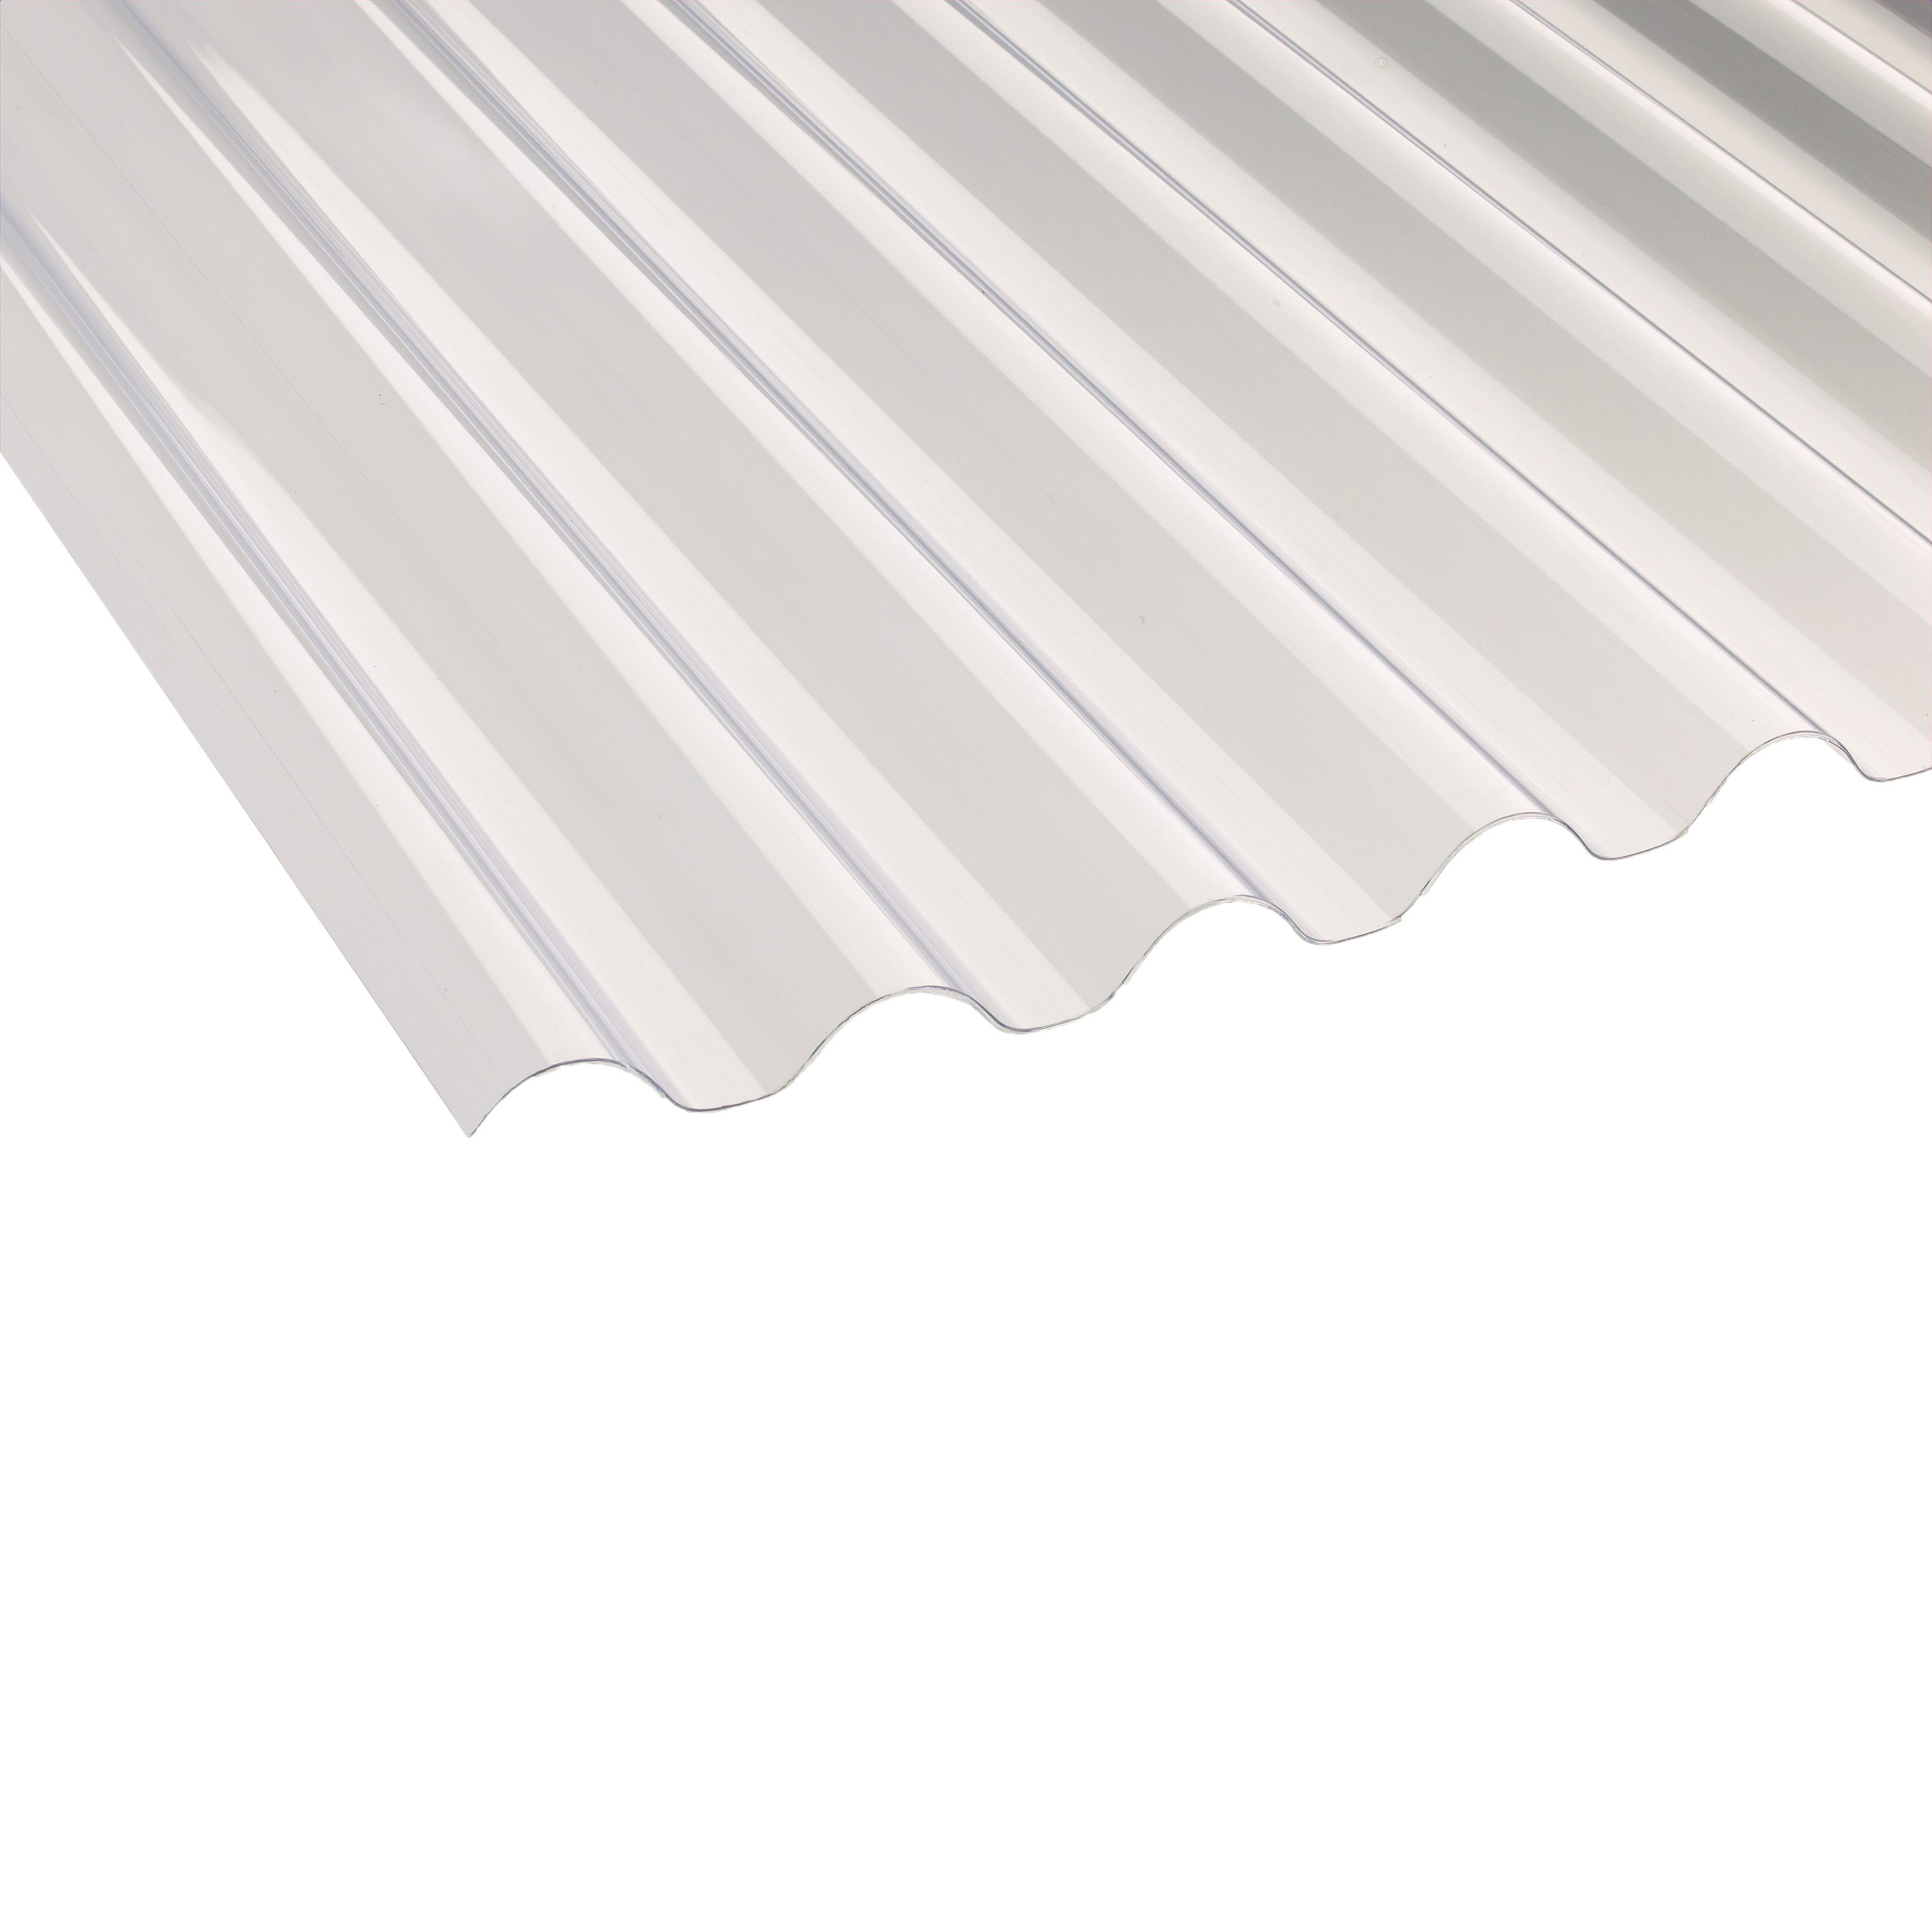 Corrugated PVC Sheeting